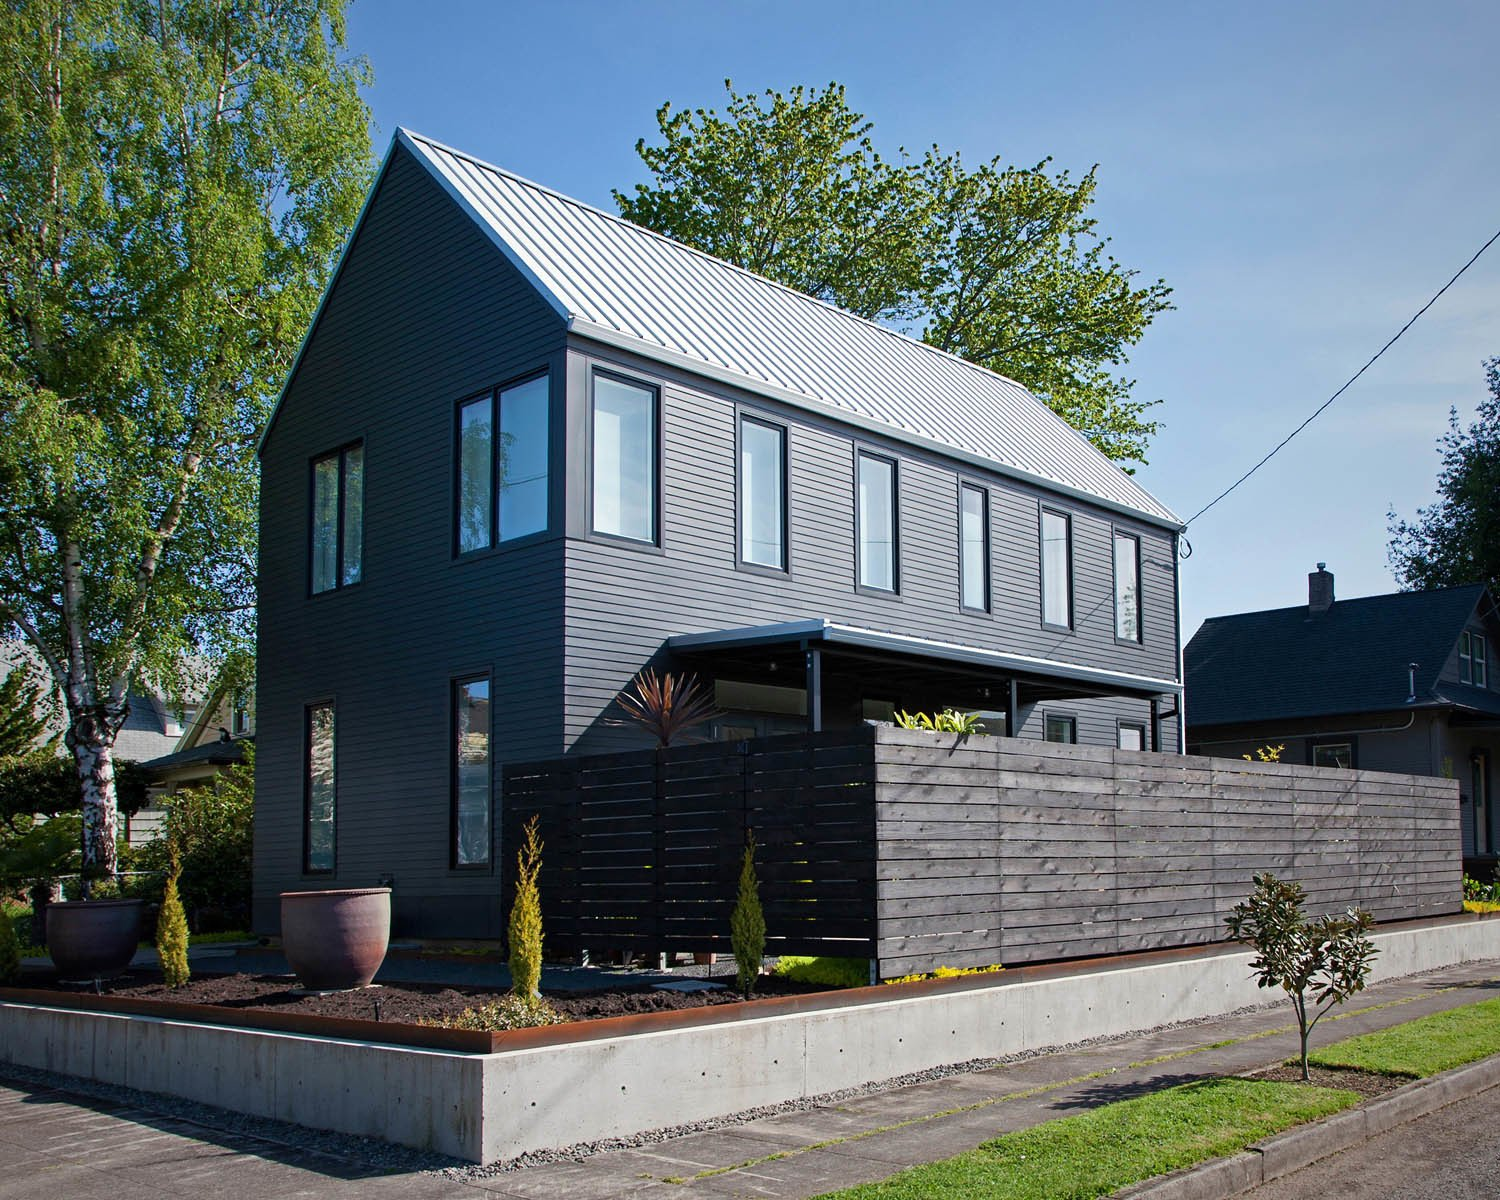 Modern Gabled House in Portland - Dwell